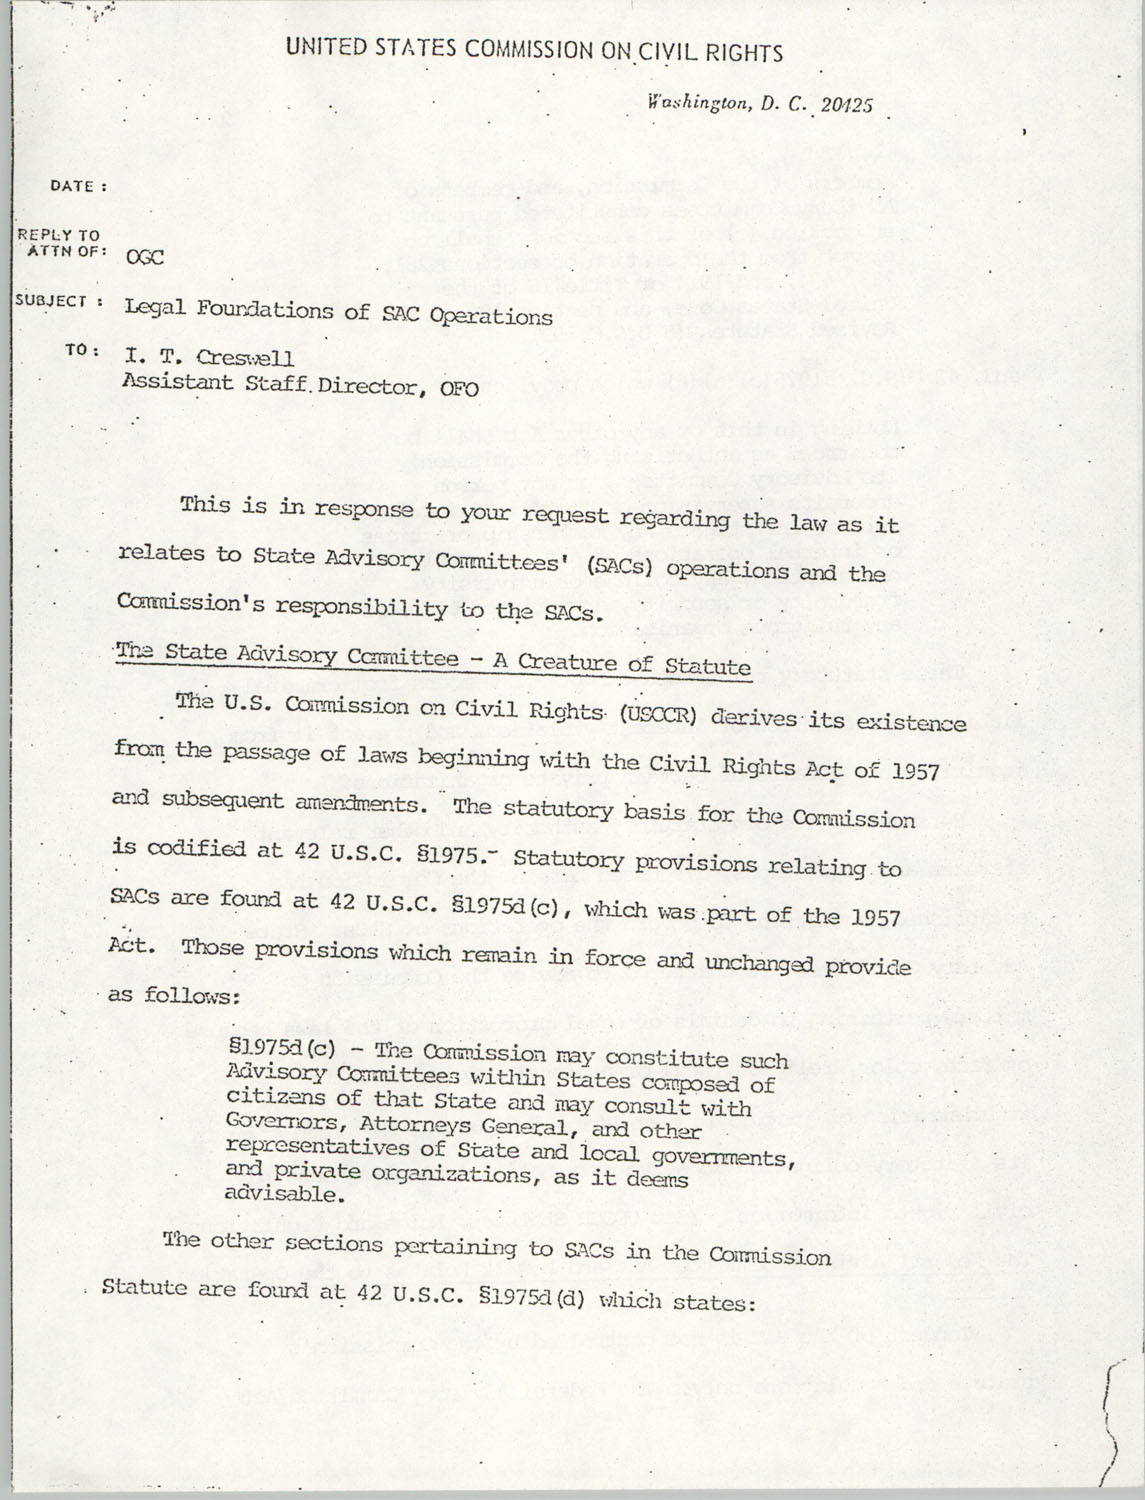 Memorandum from Lawrence B. Glick to I. T. Creswell, undated